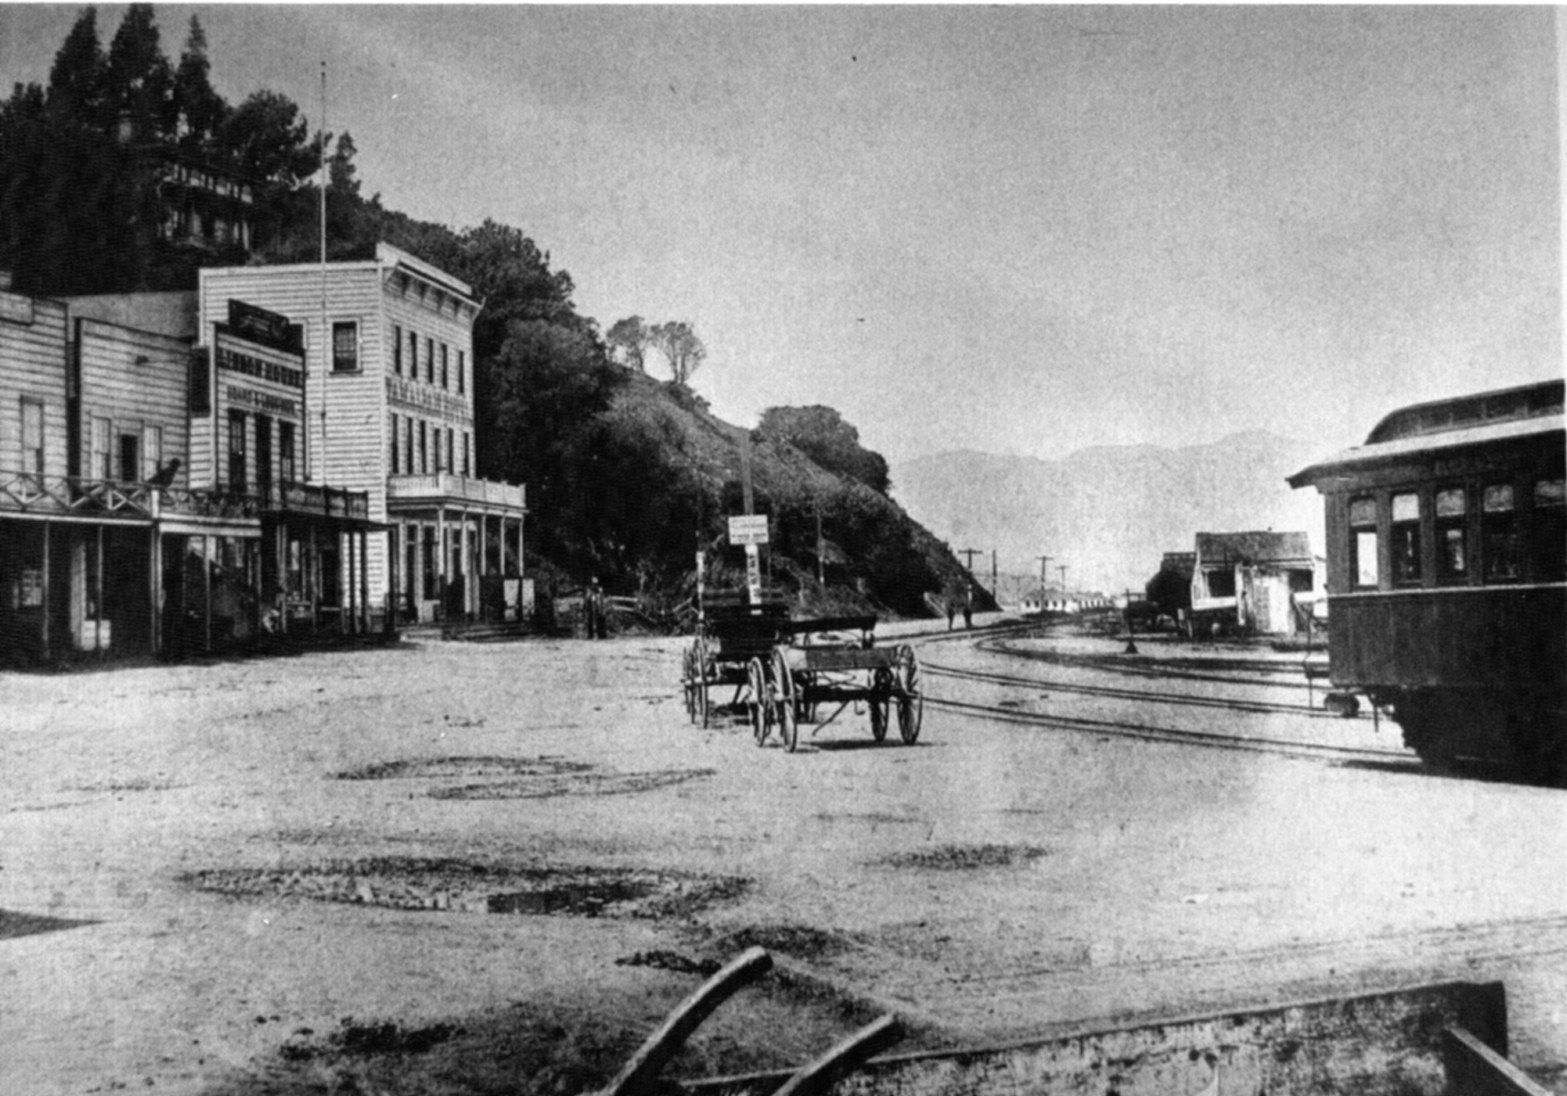 Sausalito streets were still unpaved in 1893